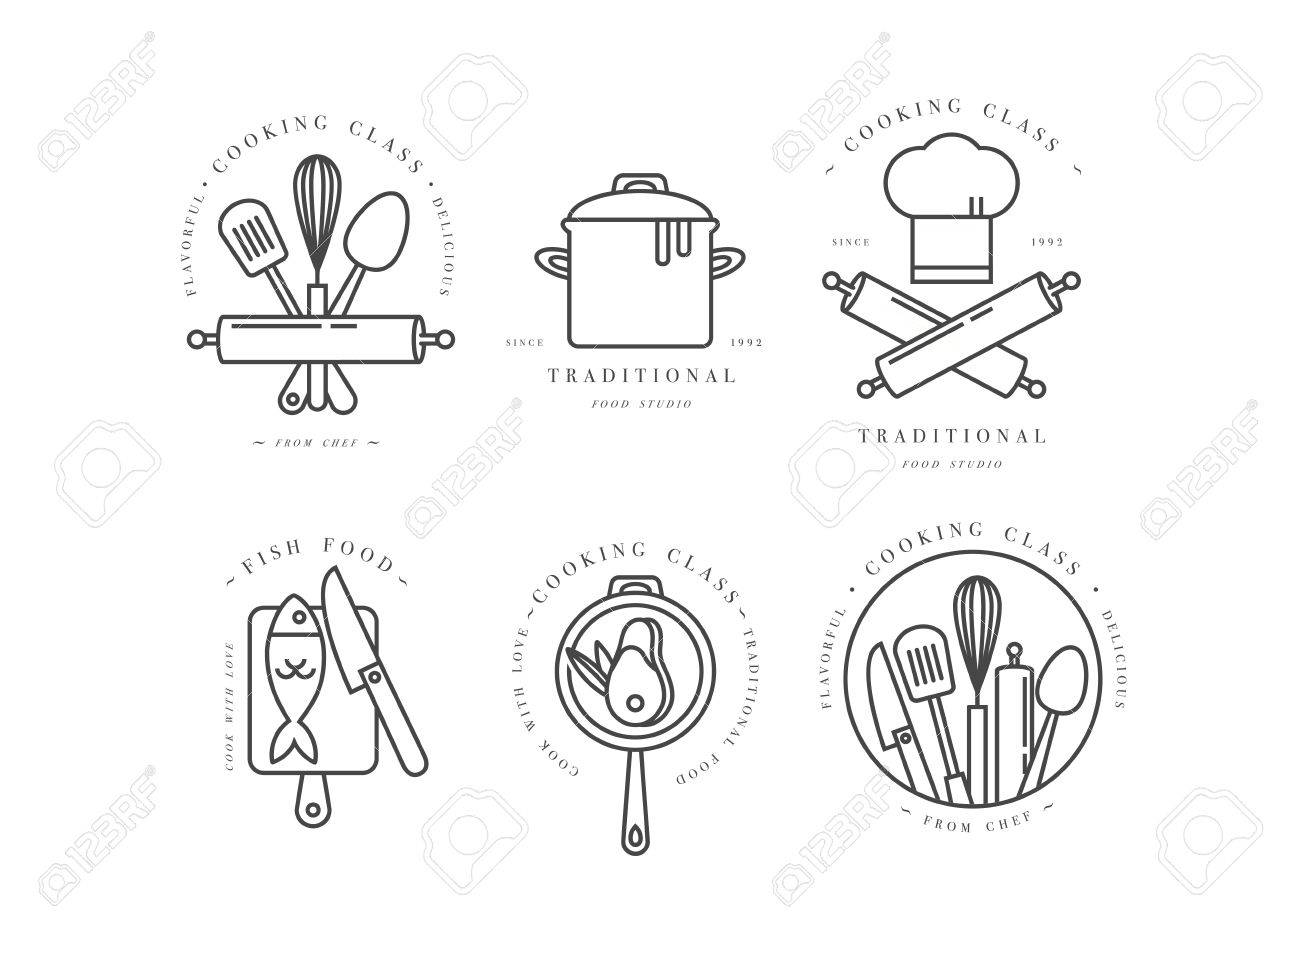 Cooking class linear design elements set of kitchen emblems cooking class linear design elements set of kitchen emblems symbols icons or food ccuart Image collections